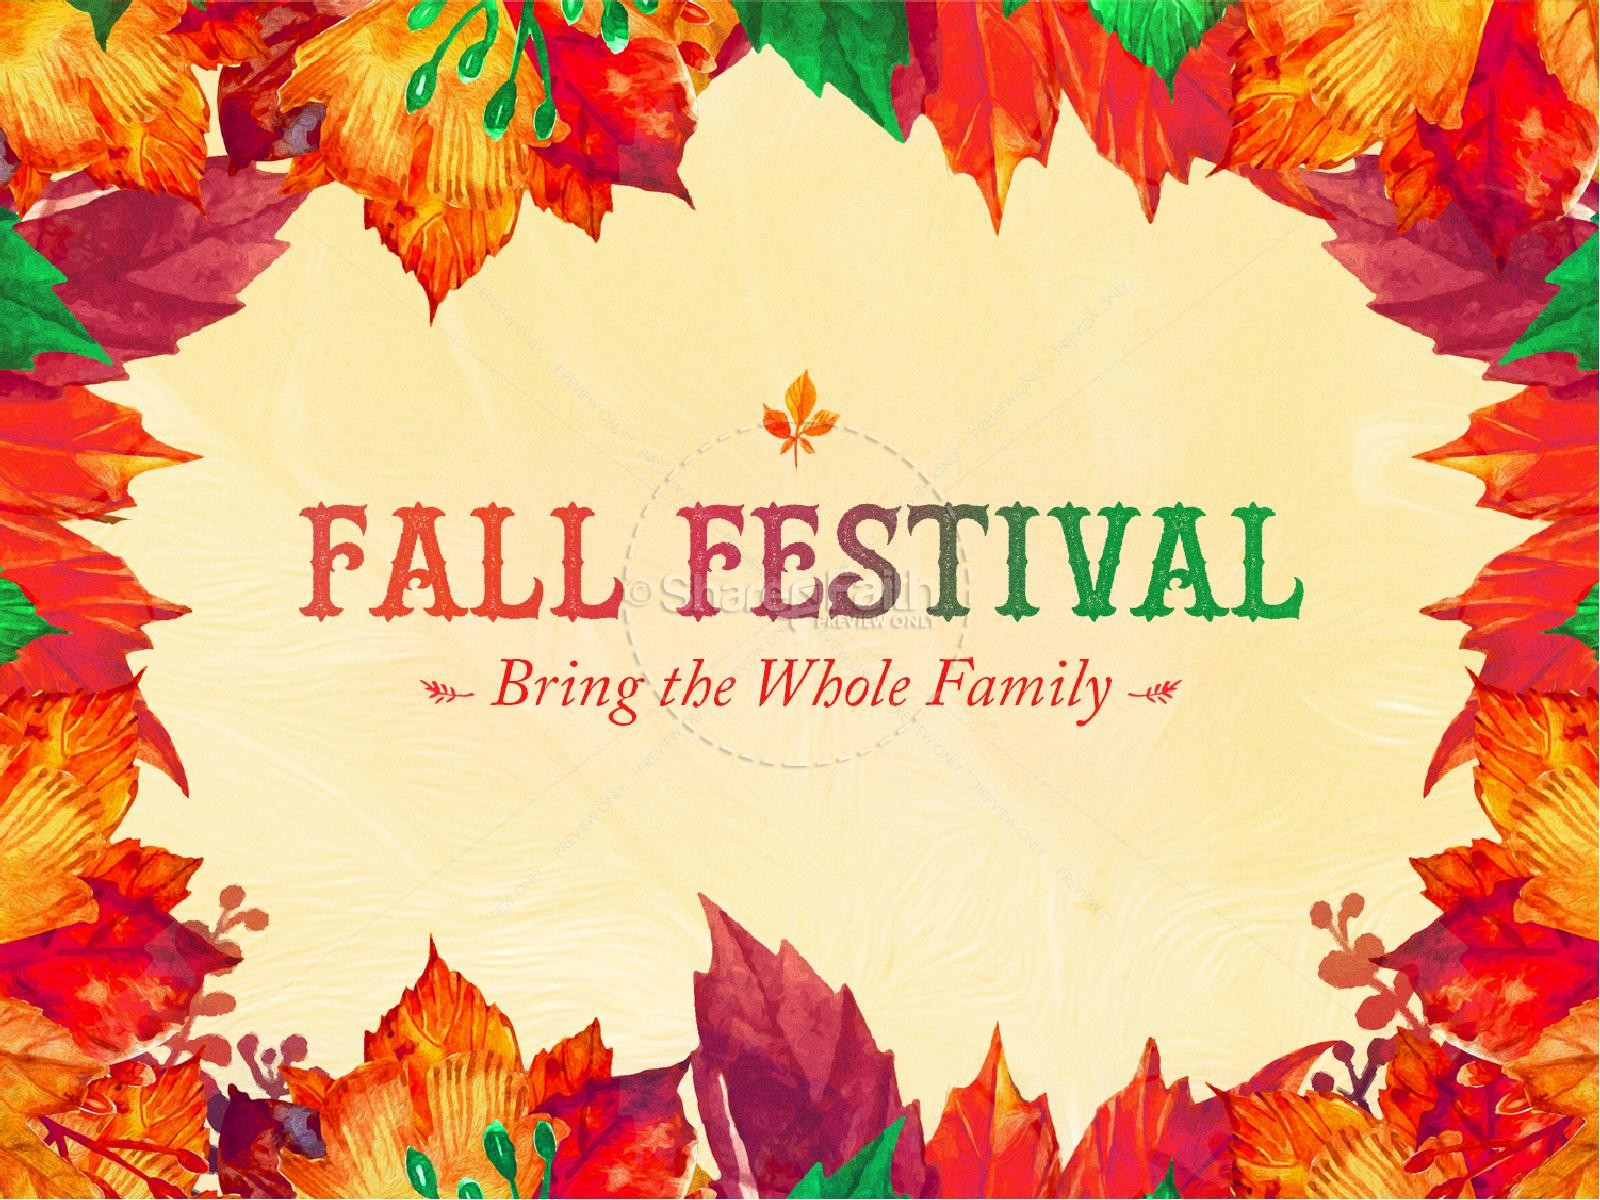 Fall festival autumn leaves church powerpoint fall thanksgiving fall festival autumn leaves church powerpoint toneelgroepblik Gallery